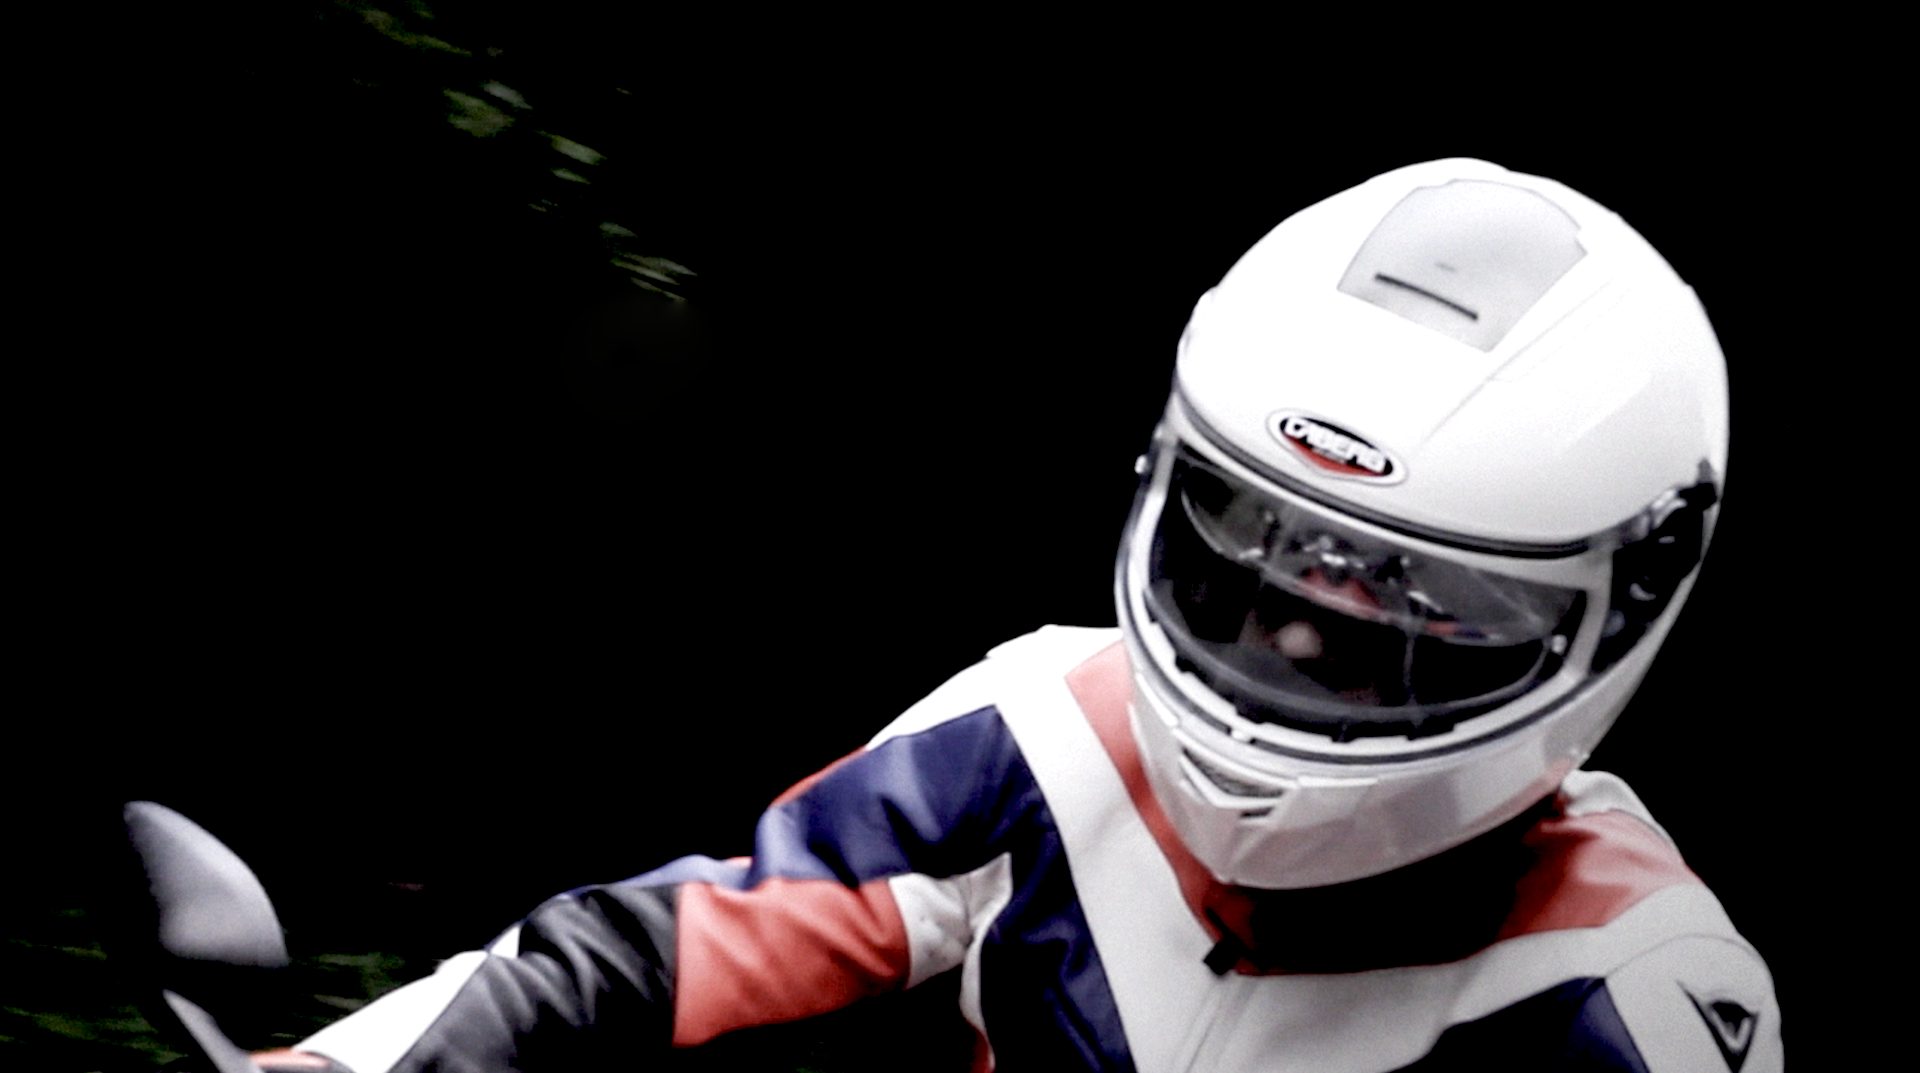 Medium shot of a motorbike rider wearing a white helmet and a leather jacket